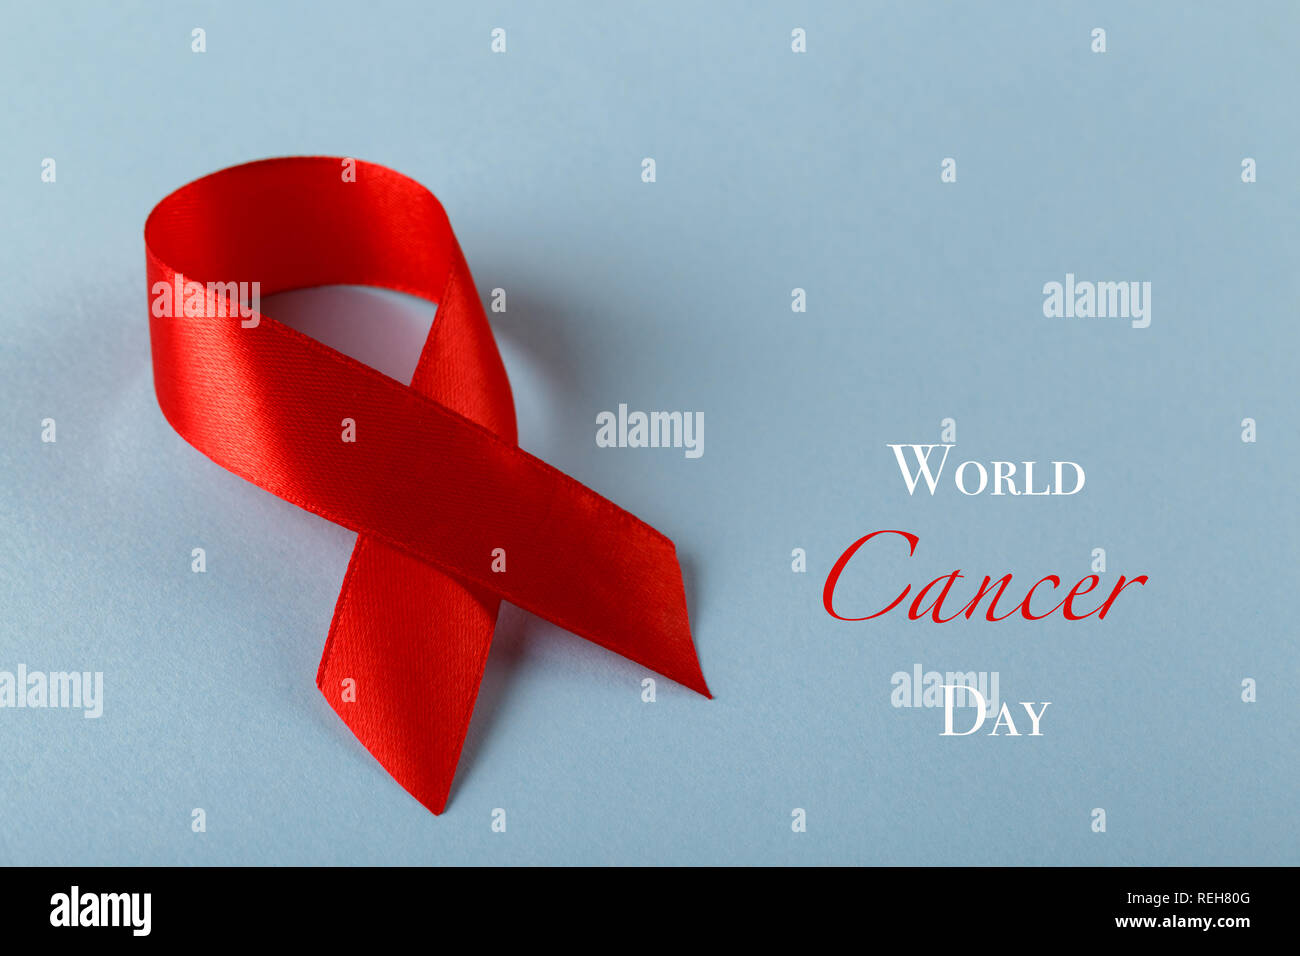 8d8215d9e17 Red ribbon on blue background with text World Cancer Day Stock Photo ...